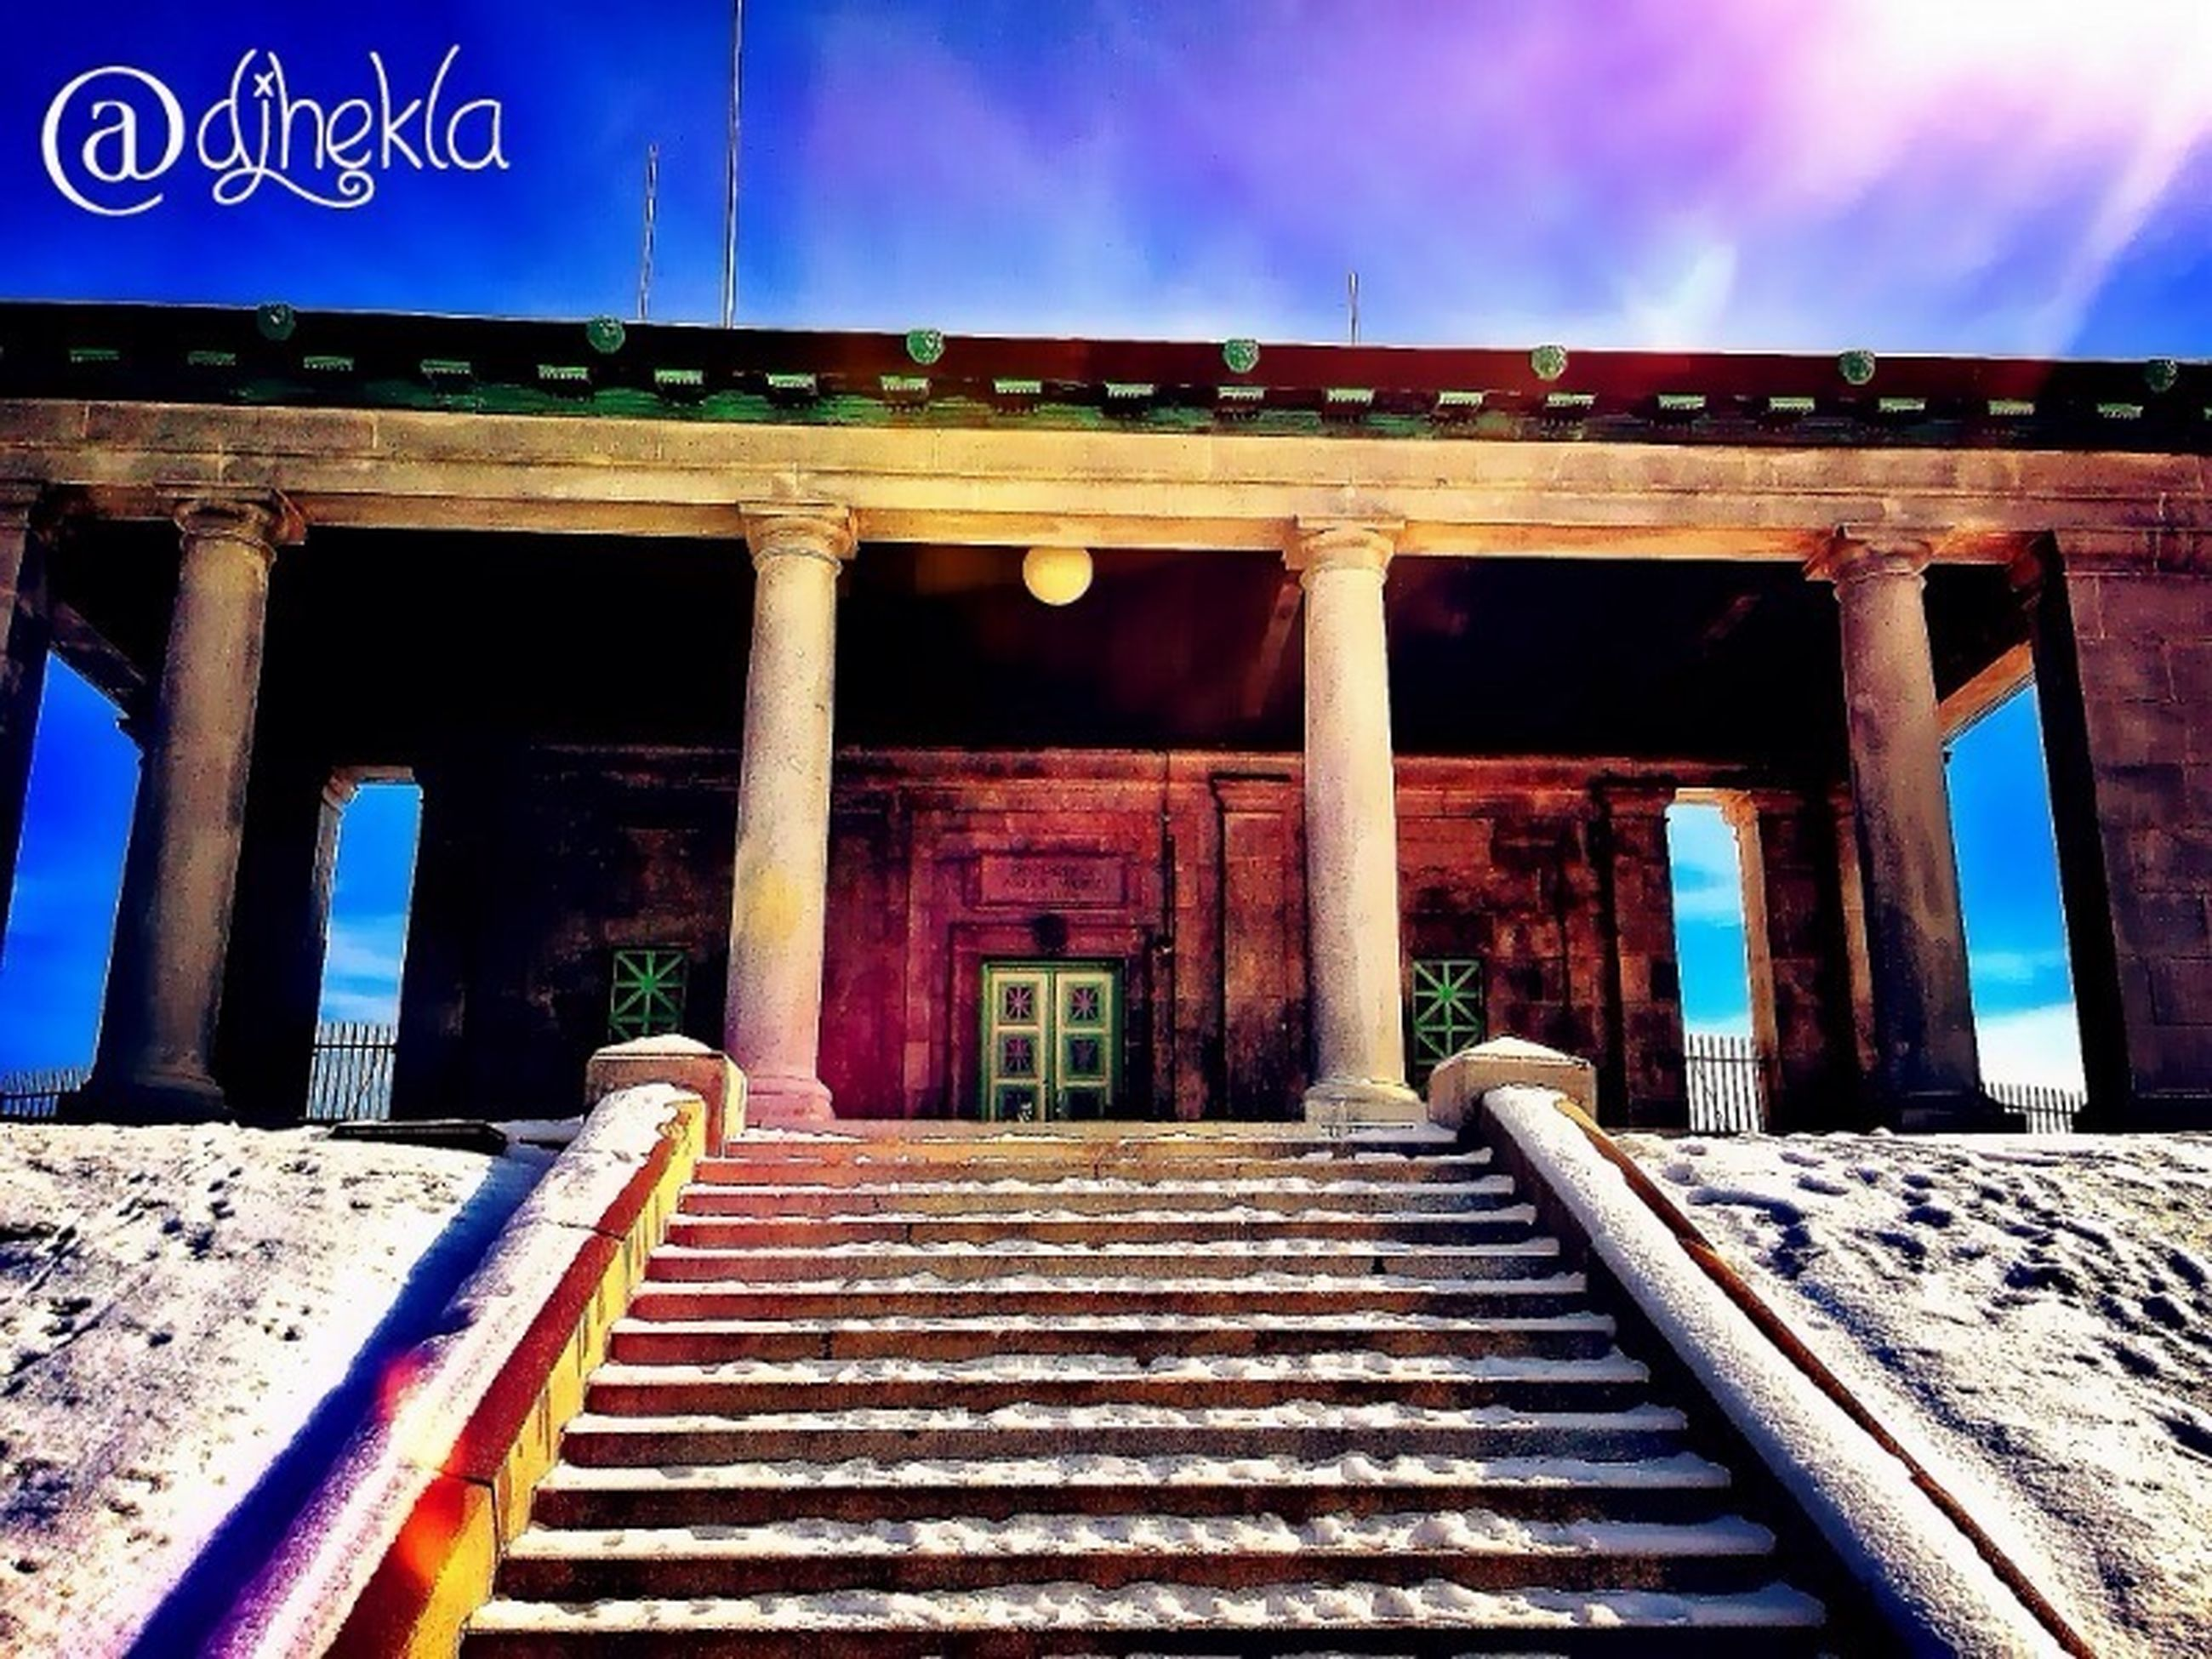 built structure, architecture, blue, sky, low angle view, building exterior, steps, sunlight, outdoors, no people, steps and staircases, railing, text, wood - material, cloud - sky, staircase, cloud, day, architectural column, auto post production filter